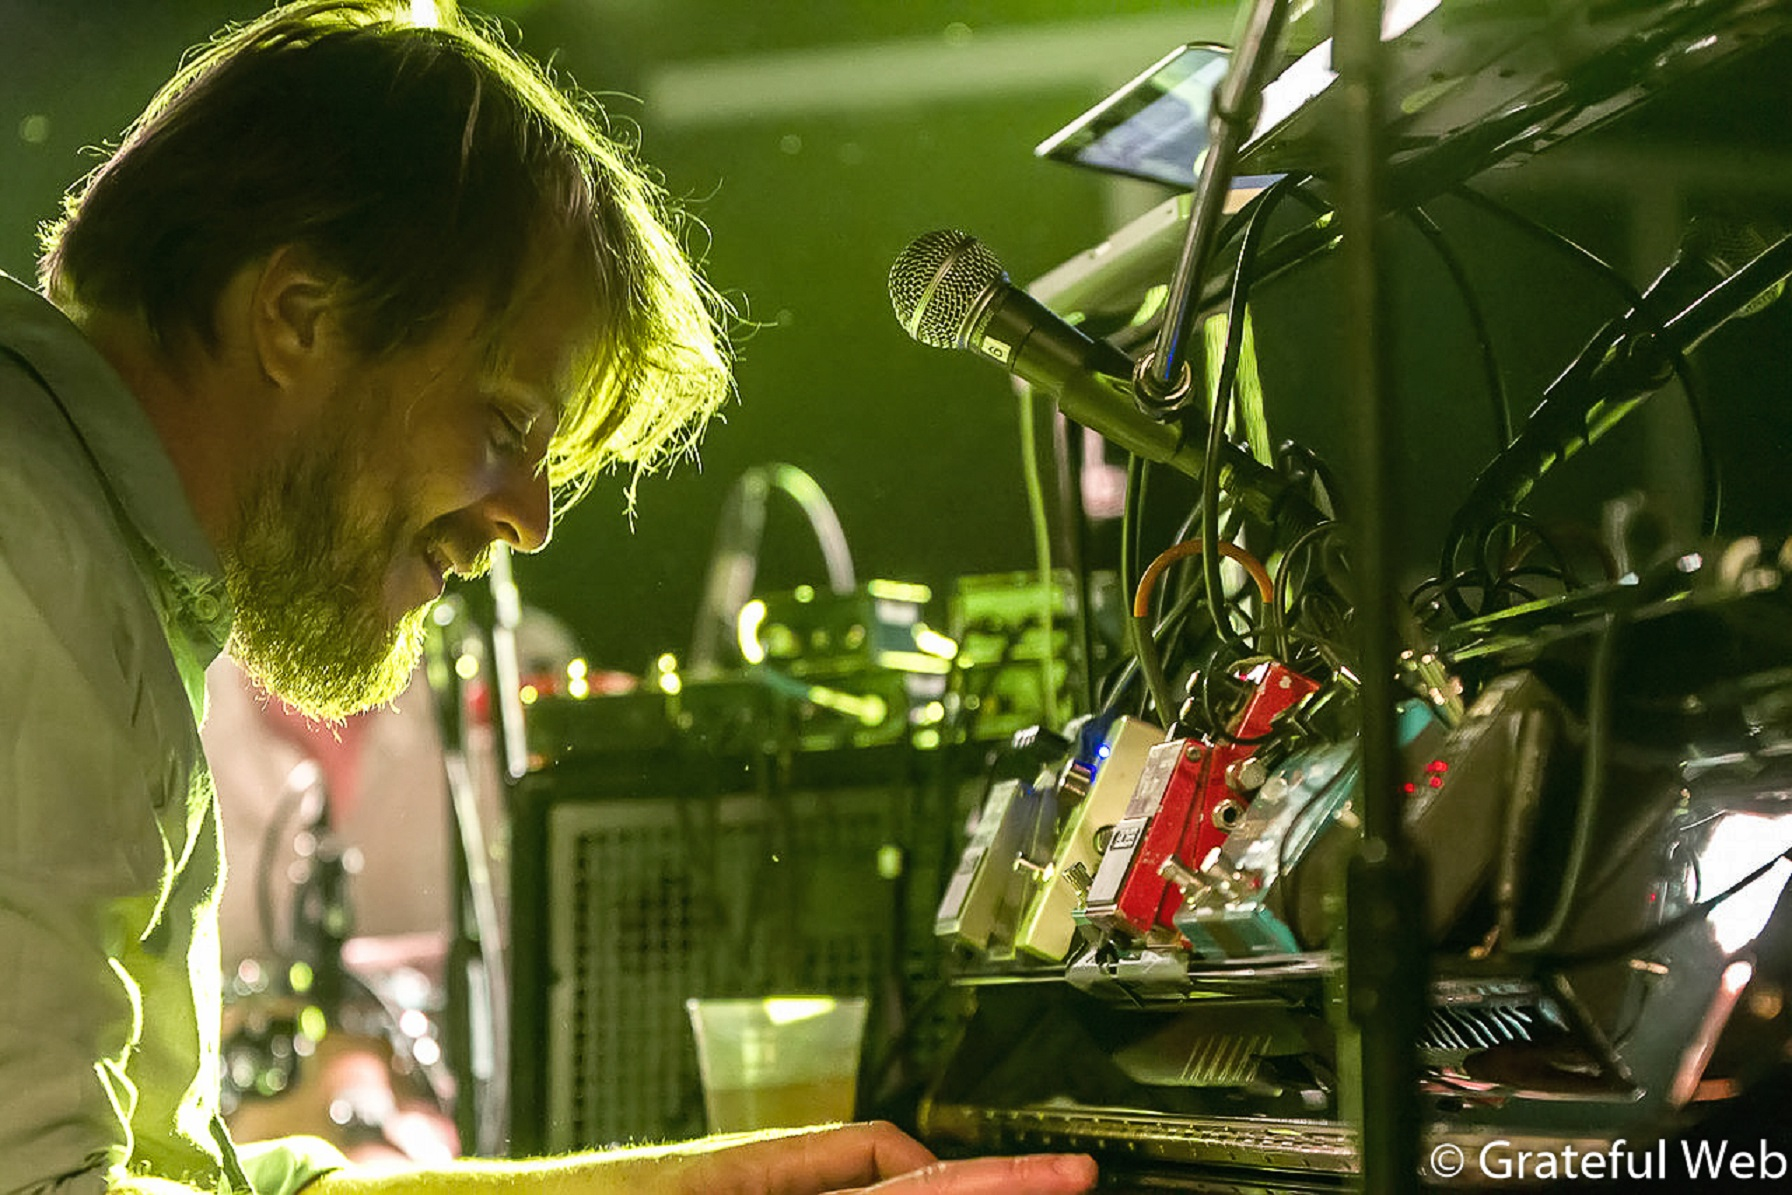 Grateful Web Interview with Marco Benevento